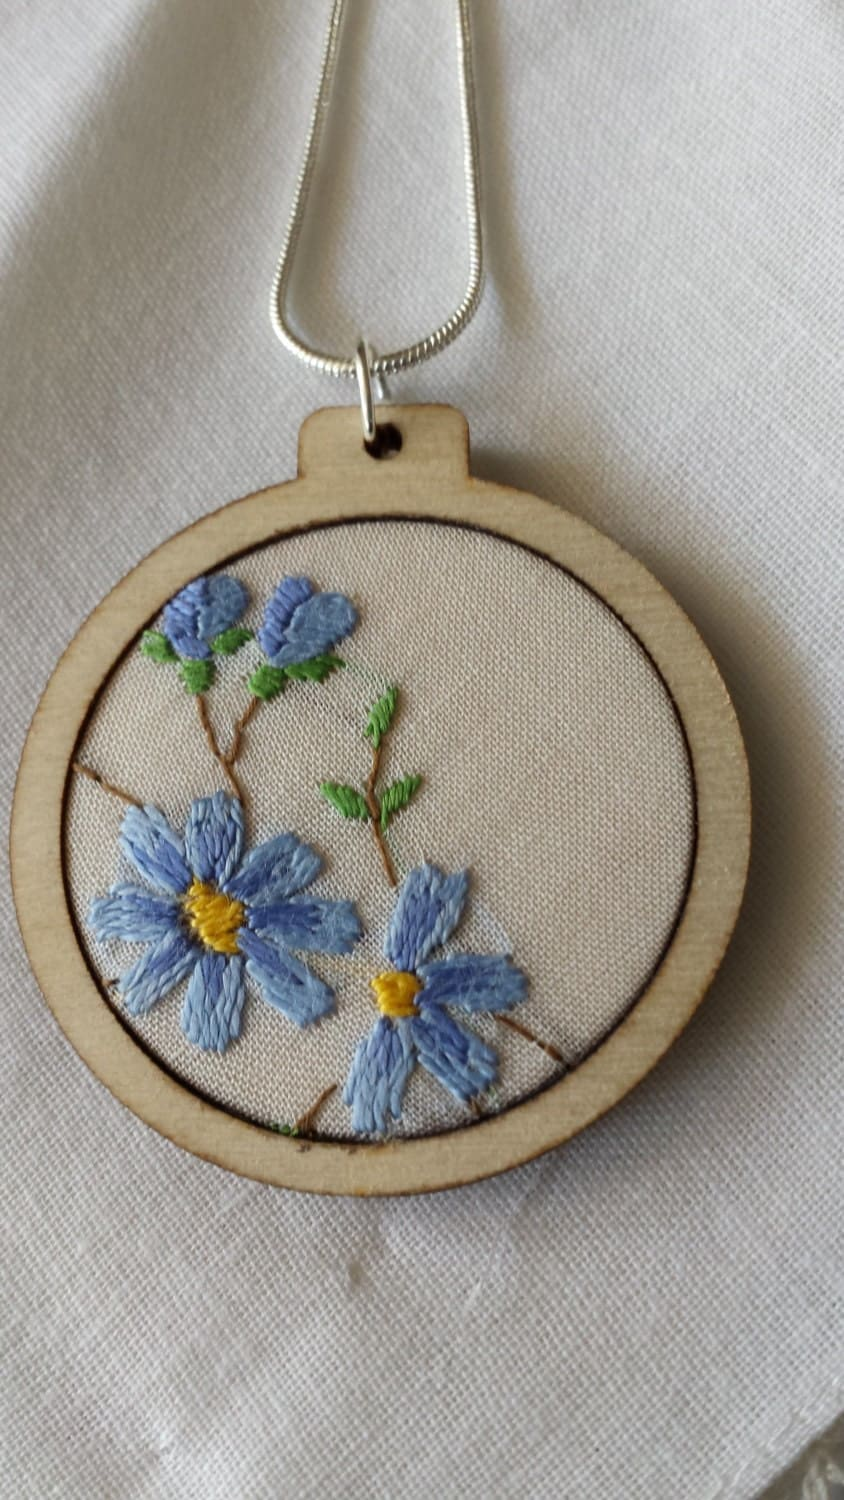 Minature vintage embroidery hoop pendant.